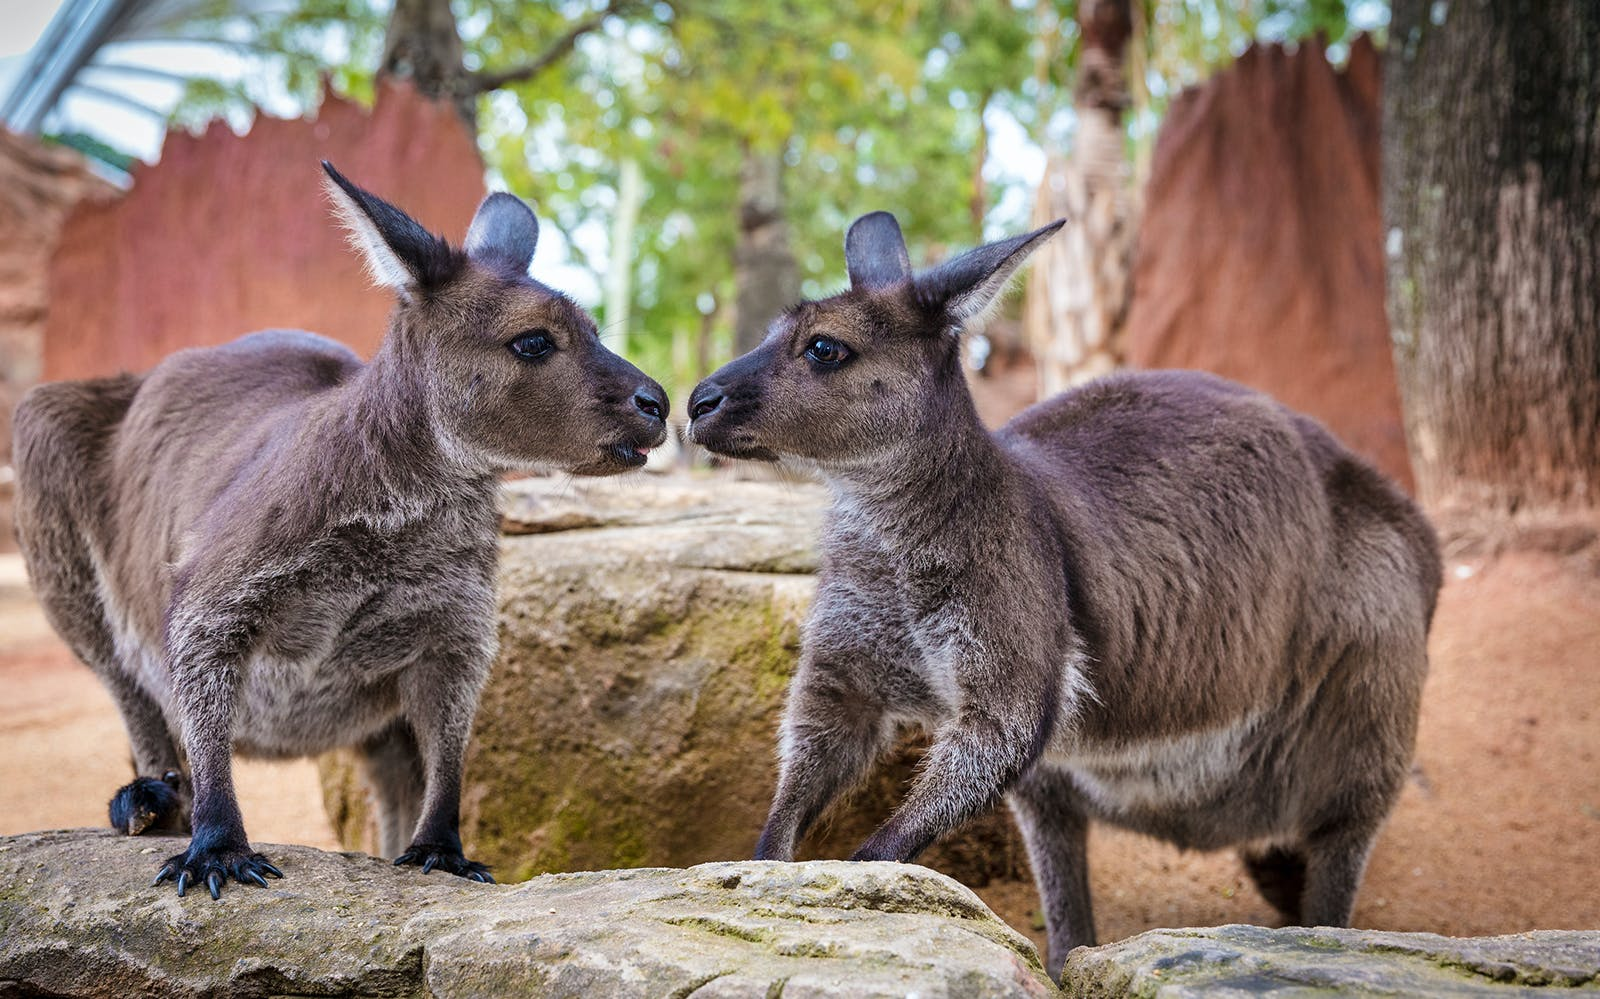 wild life sydney zoo anytime entry ticket -5